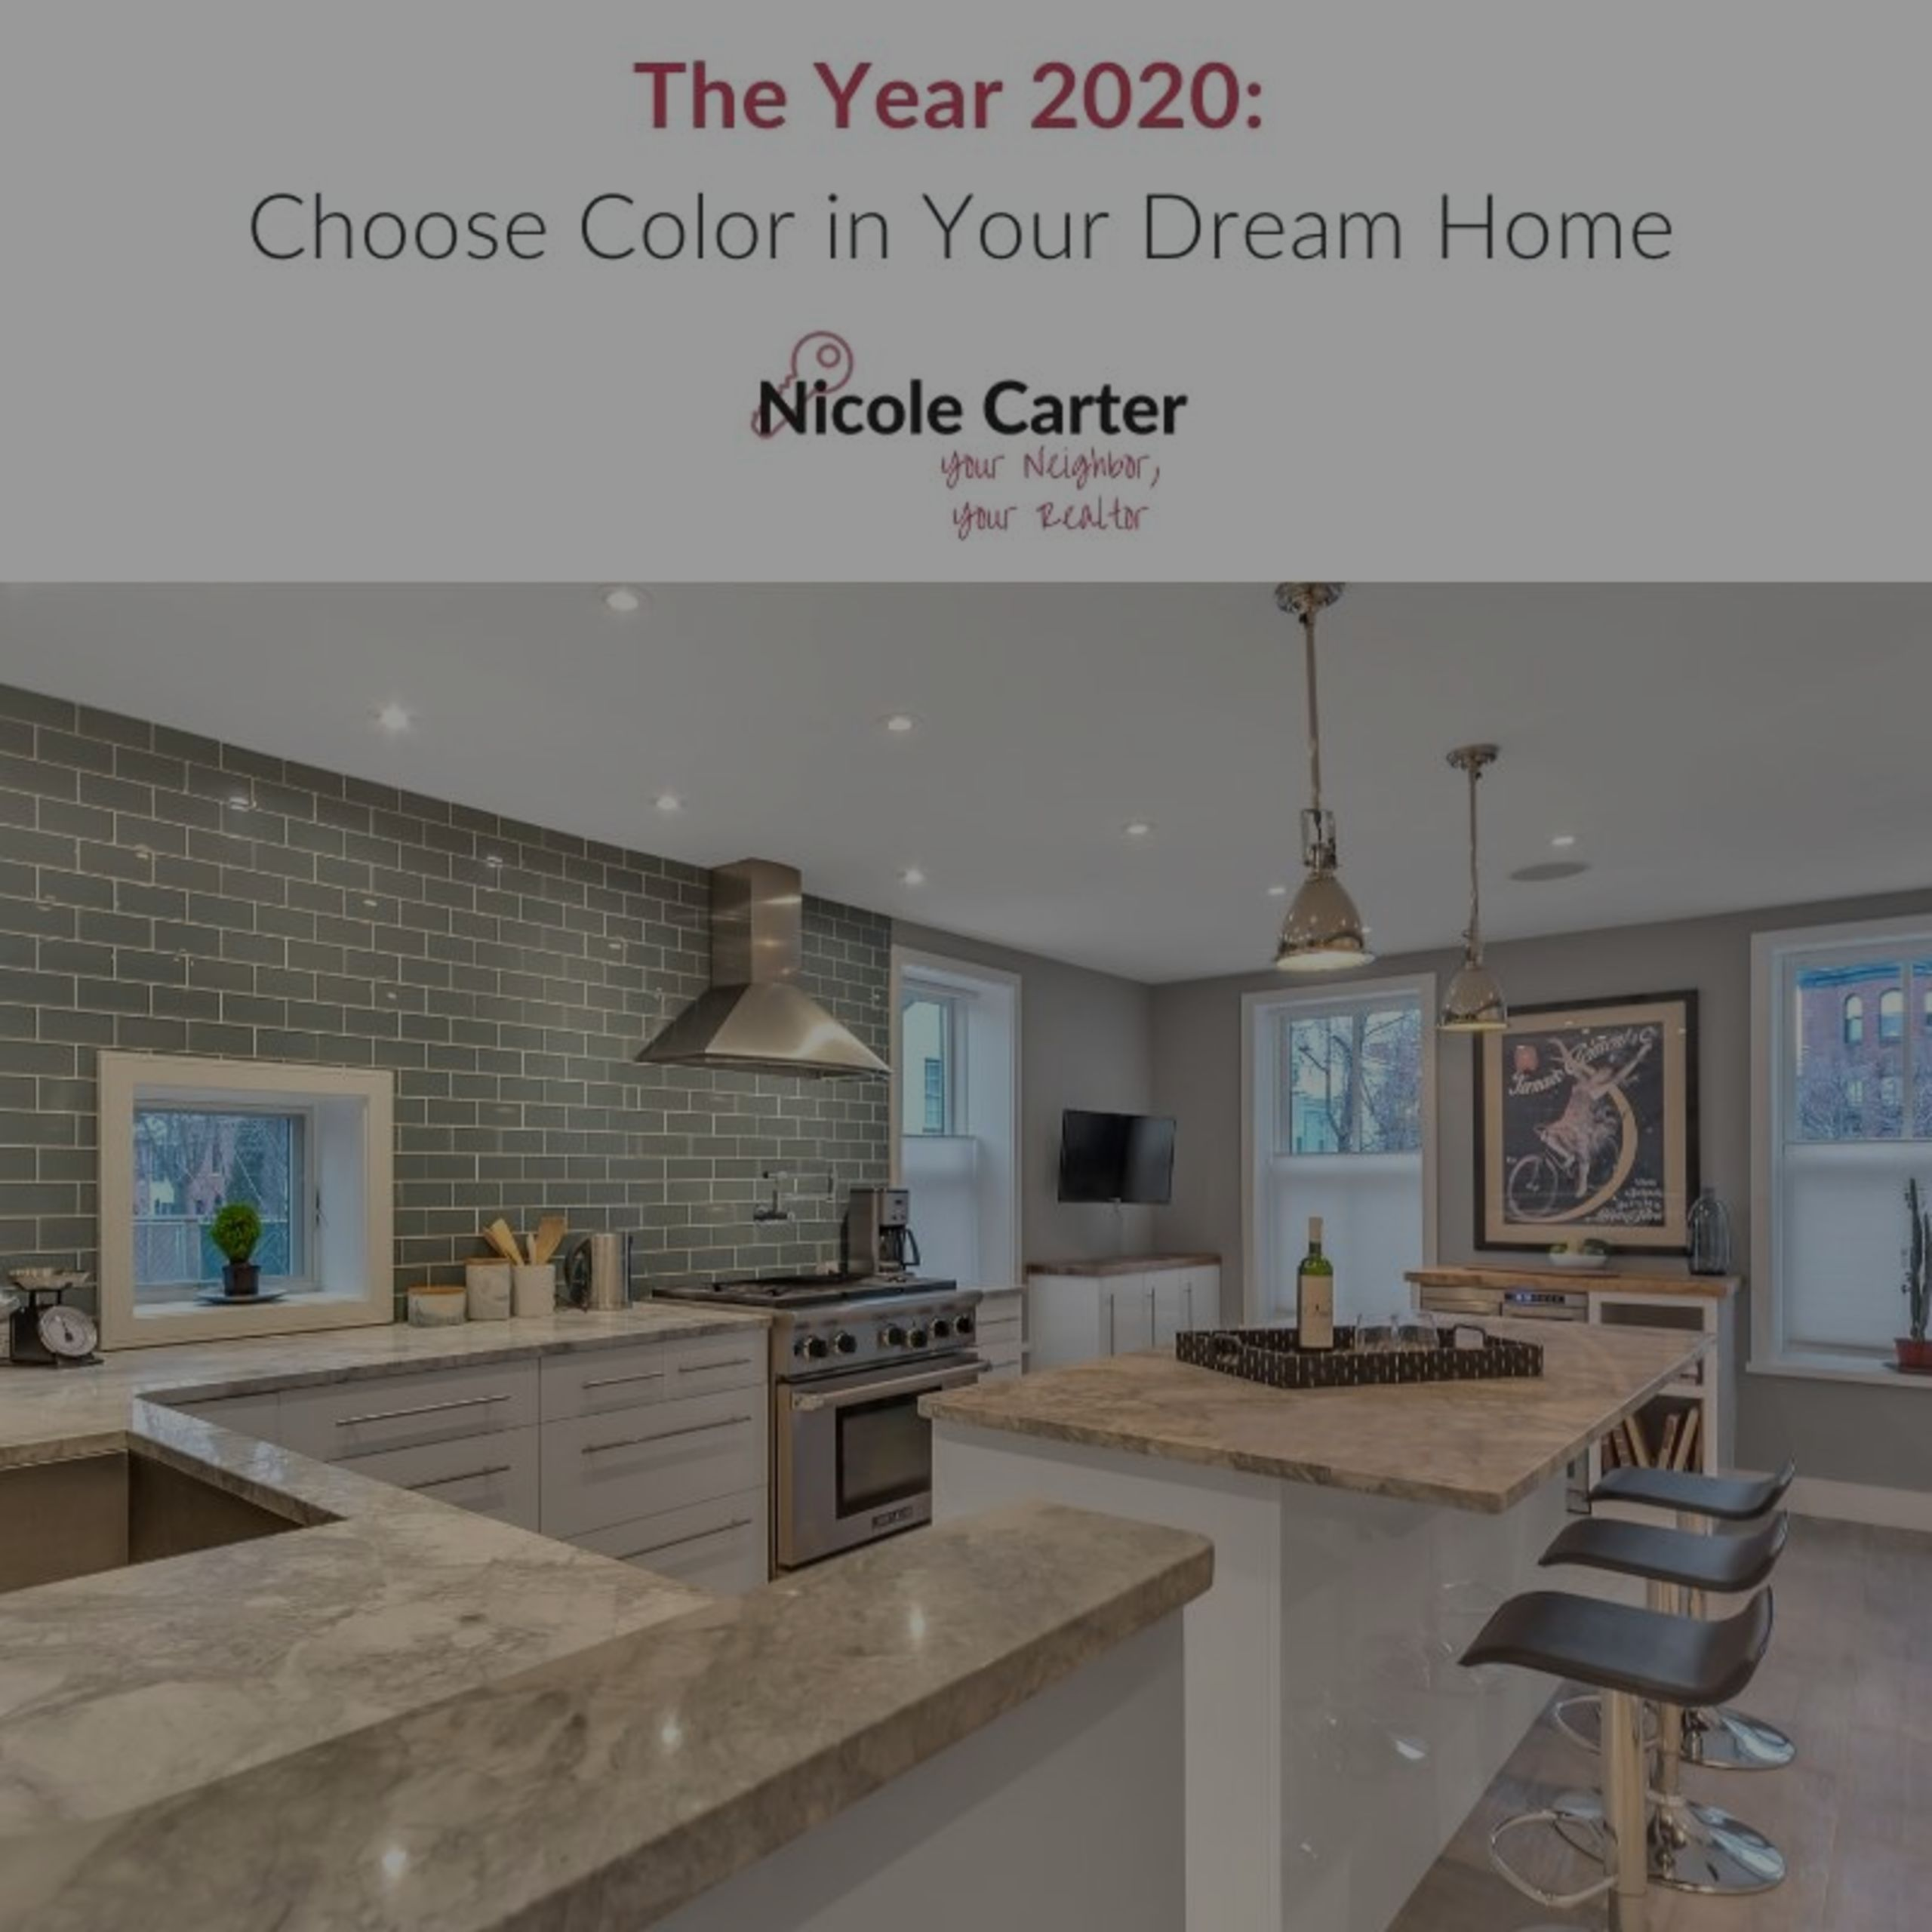 The Year 2020: Choose Color in Your Dream Home